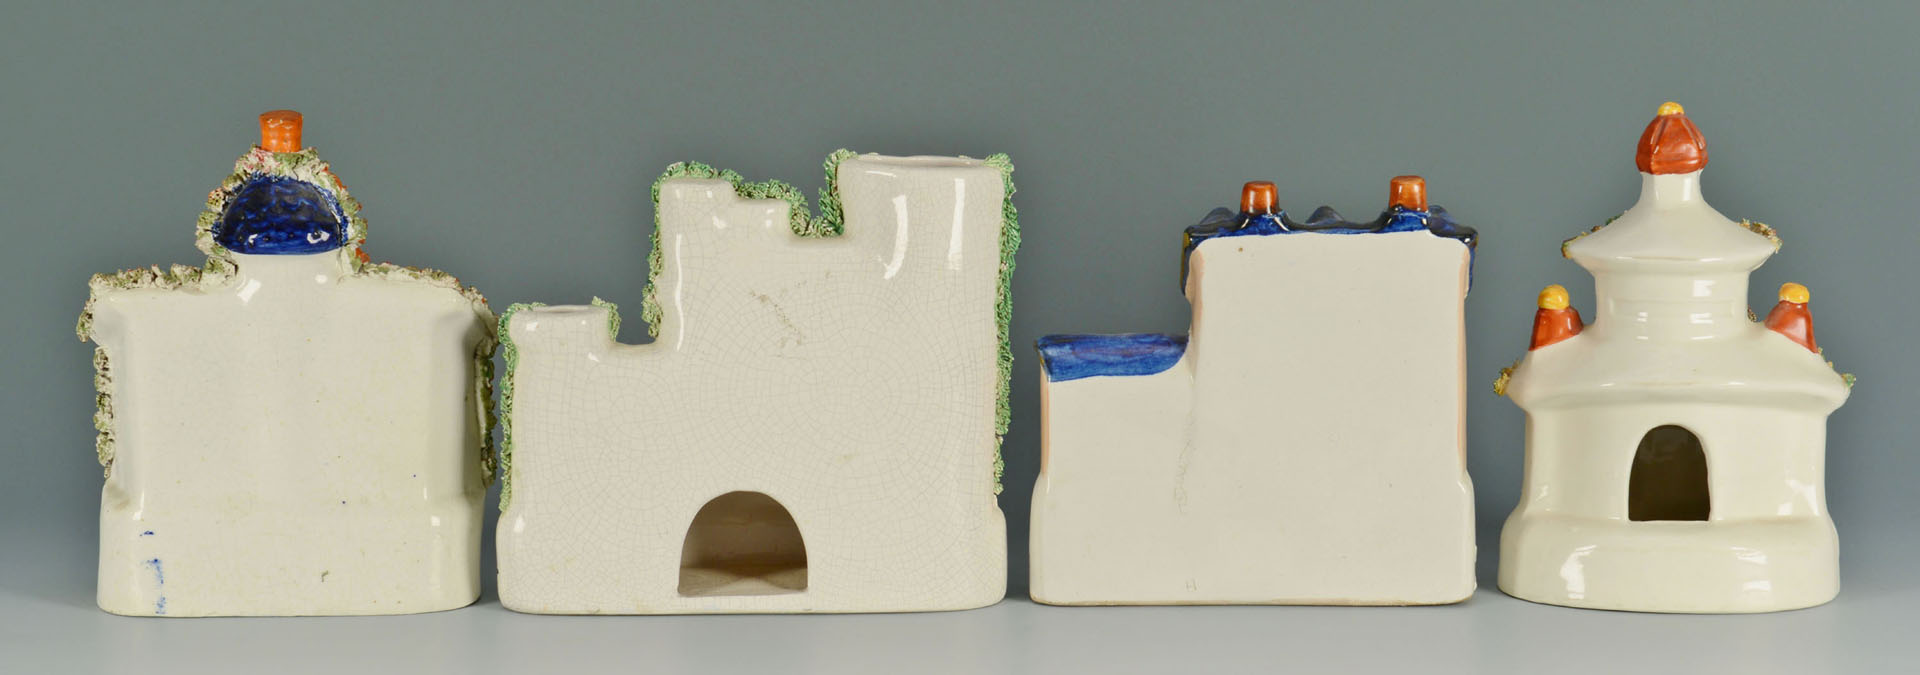 Lot 267: 4 Staffordshire Buildings